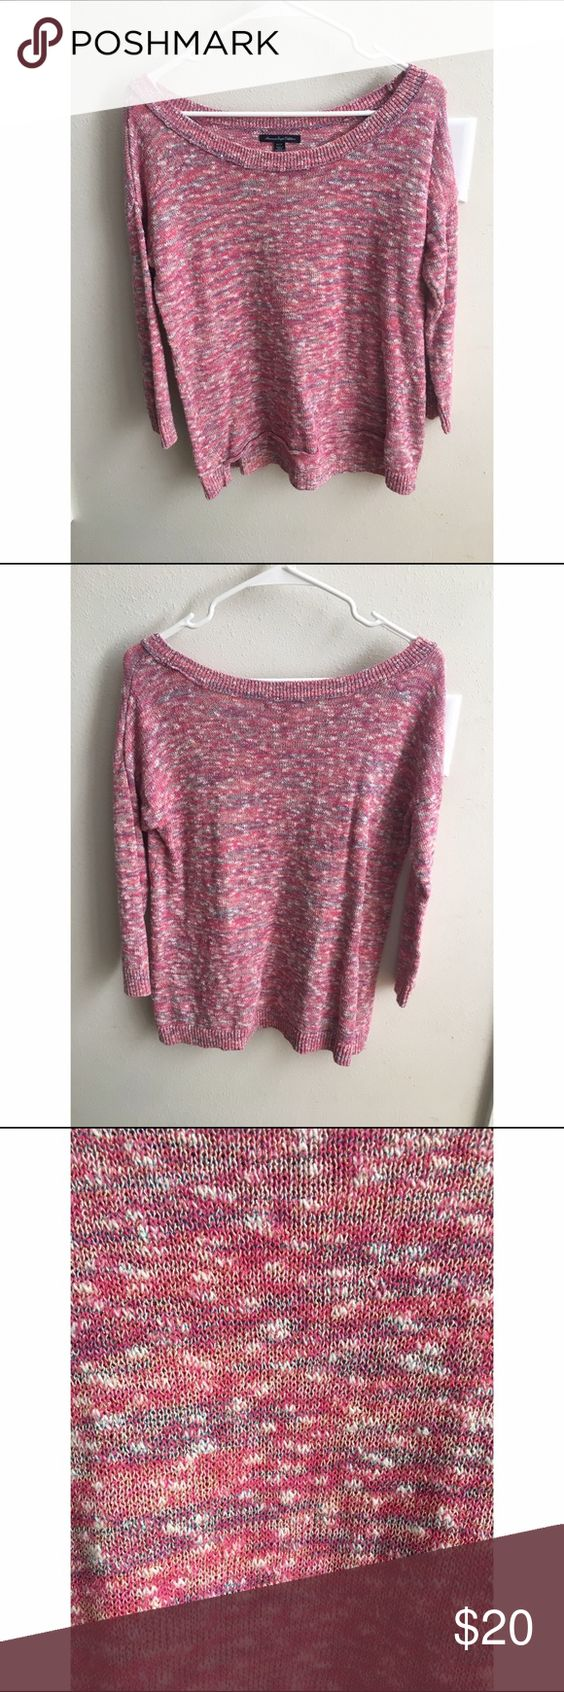 American Eagle Sweater Pink sweater with some blue white and gold in it. Still in great condition. American Eagle Outfitters Sweaters